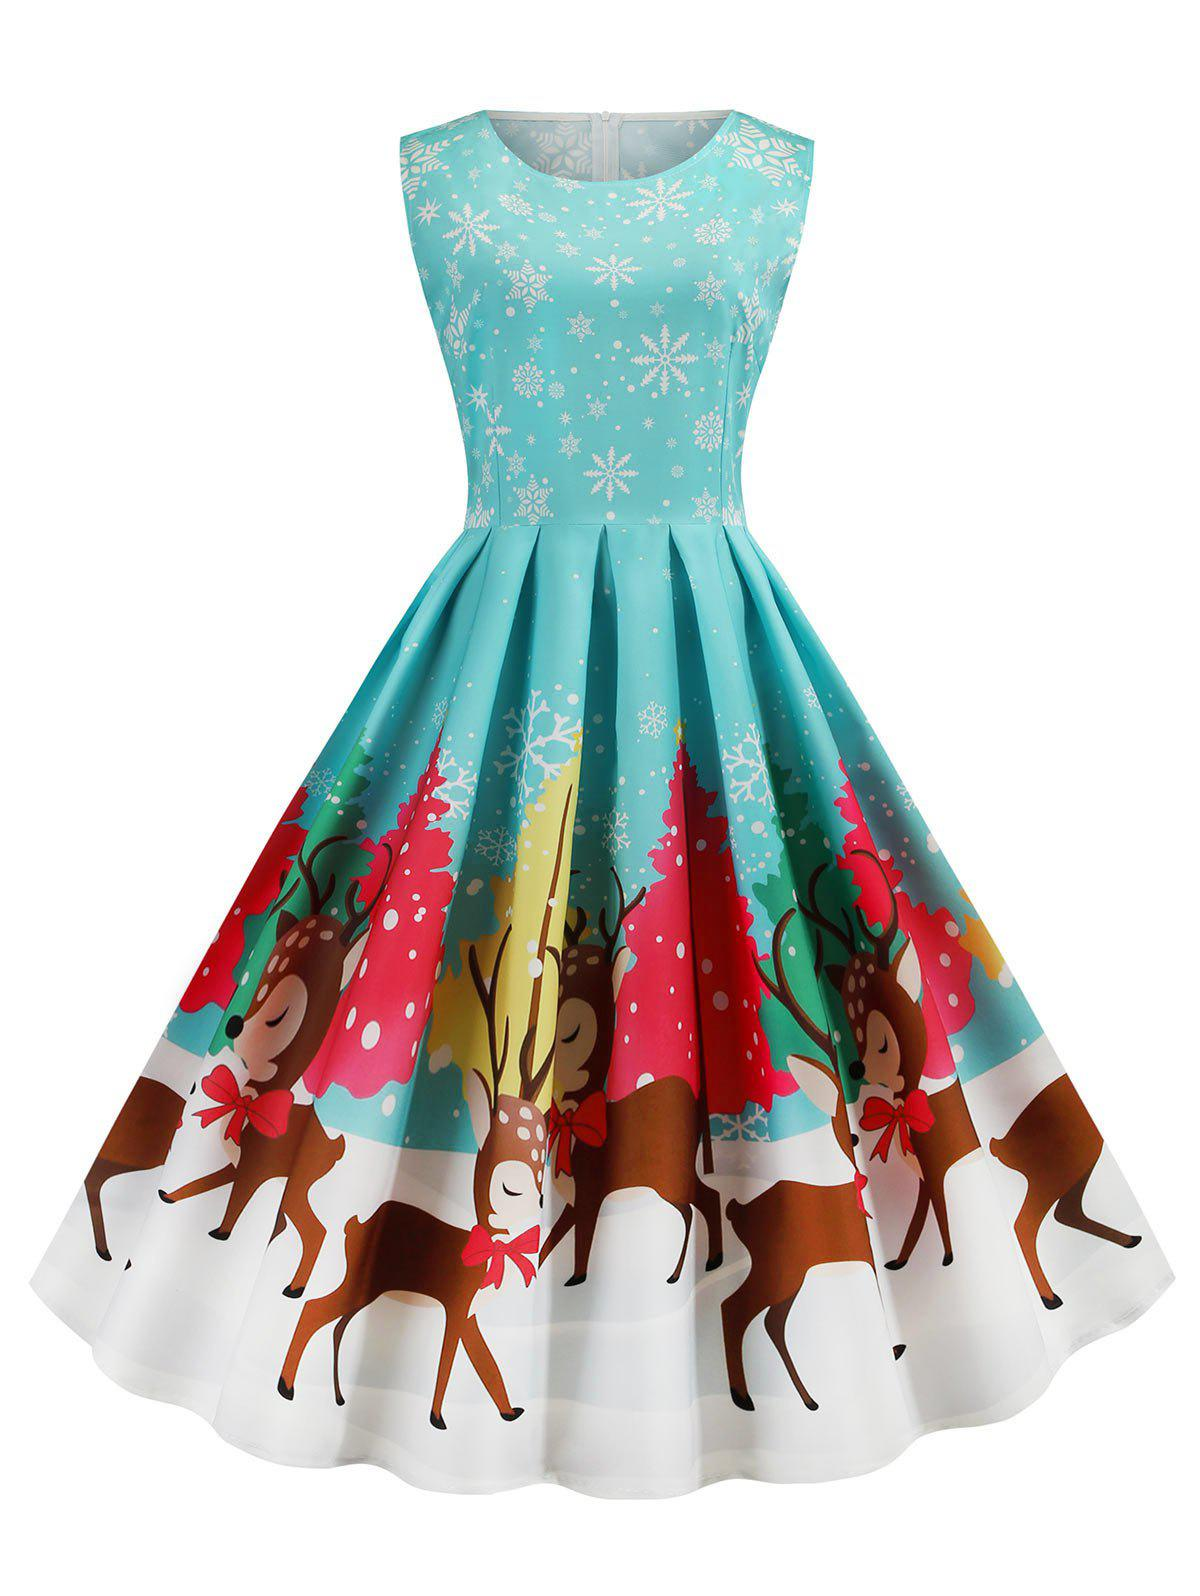 Santa Claus Snowflake Reindeer Sleeveless Christmas Dress - CRYSTAL BLUE S